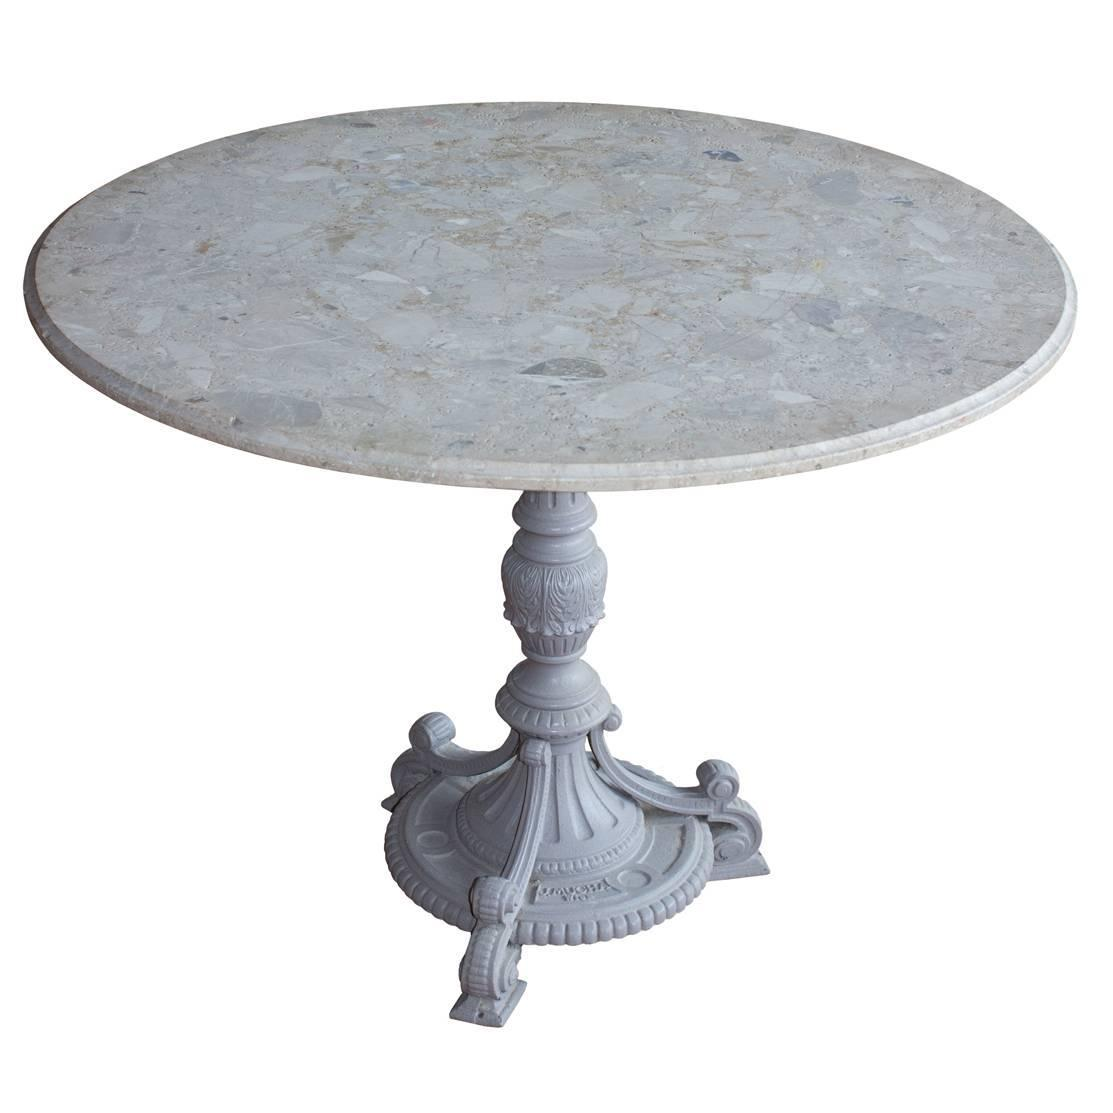 Antique Cast Iron Conservatory Table At 1stdibs